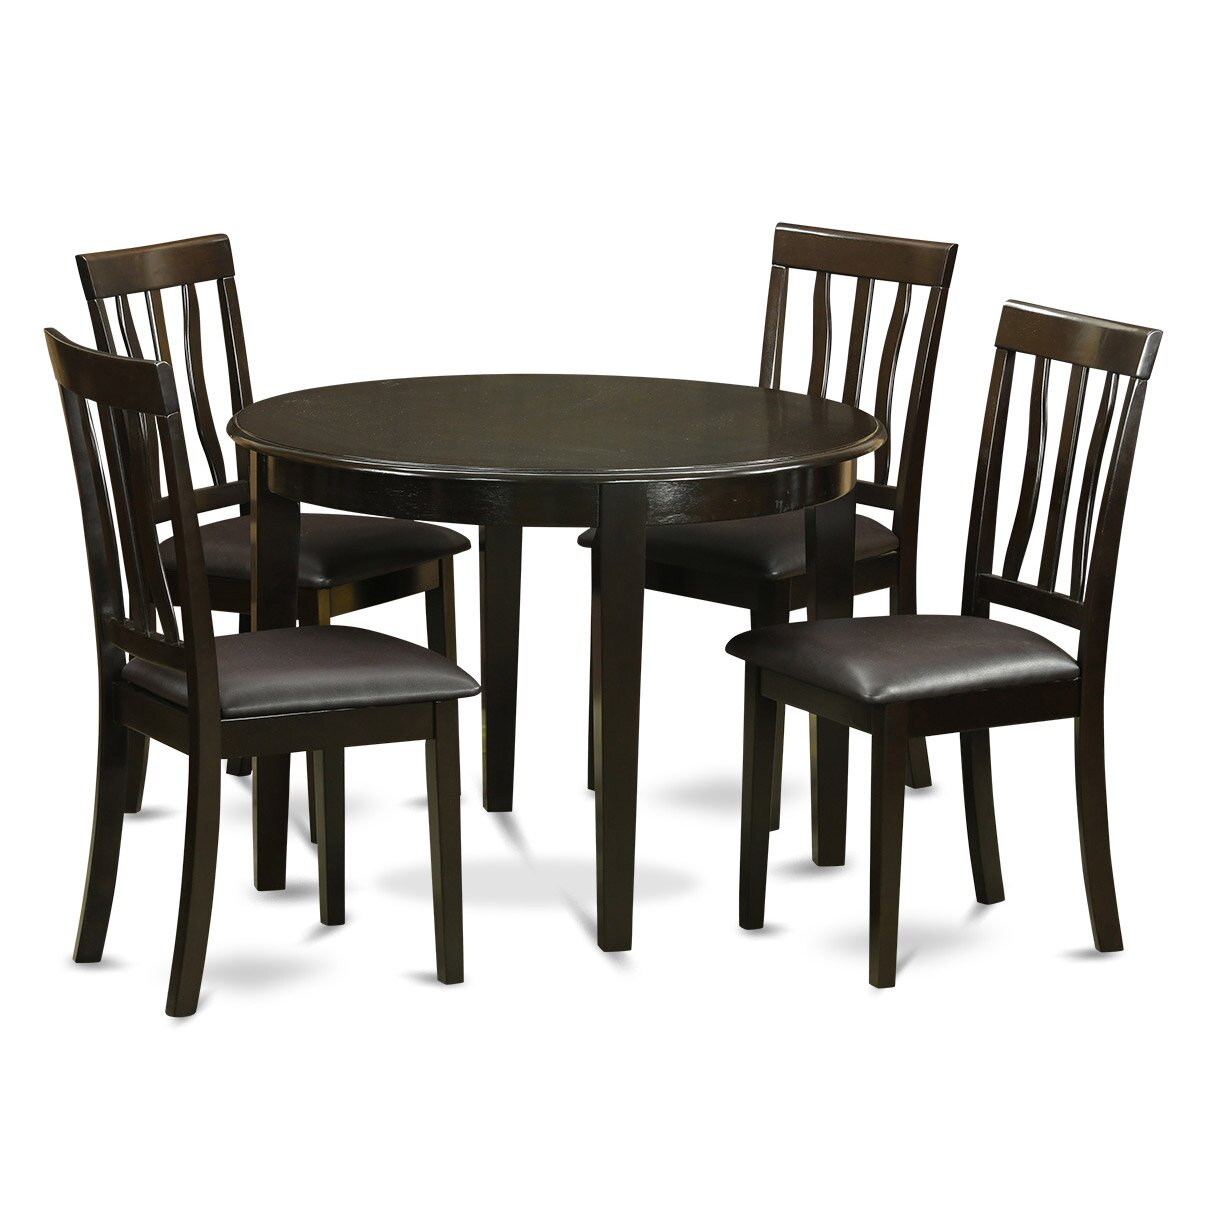 Wooden importers boston 5 piece dining set wayfair for Small kitchen table and chairs